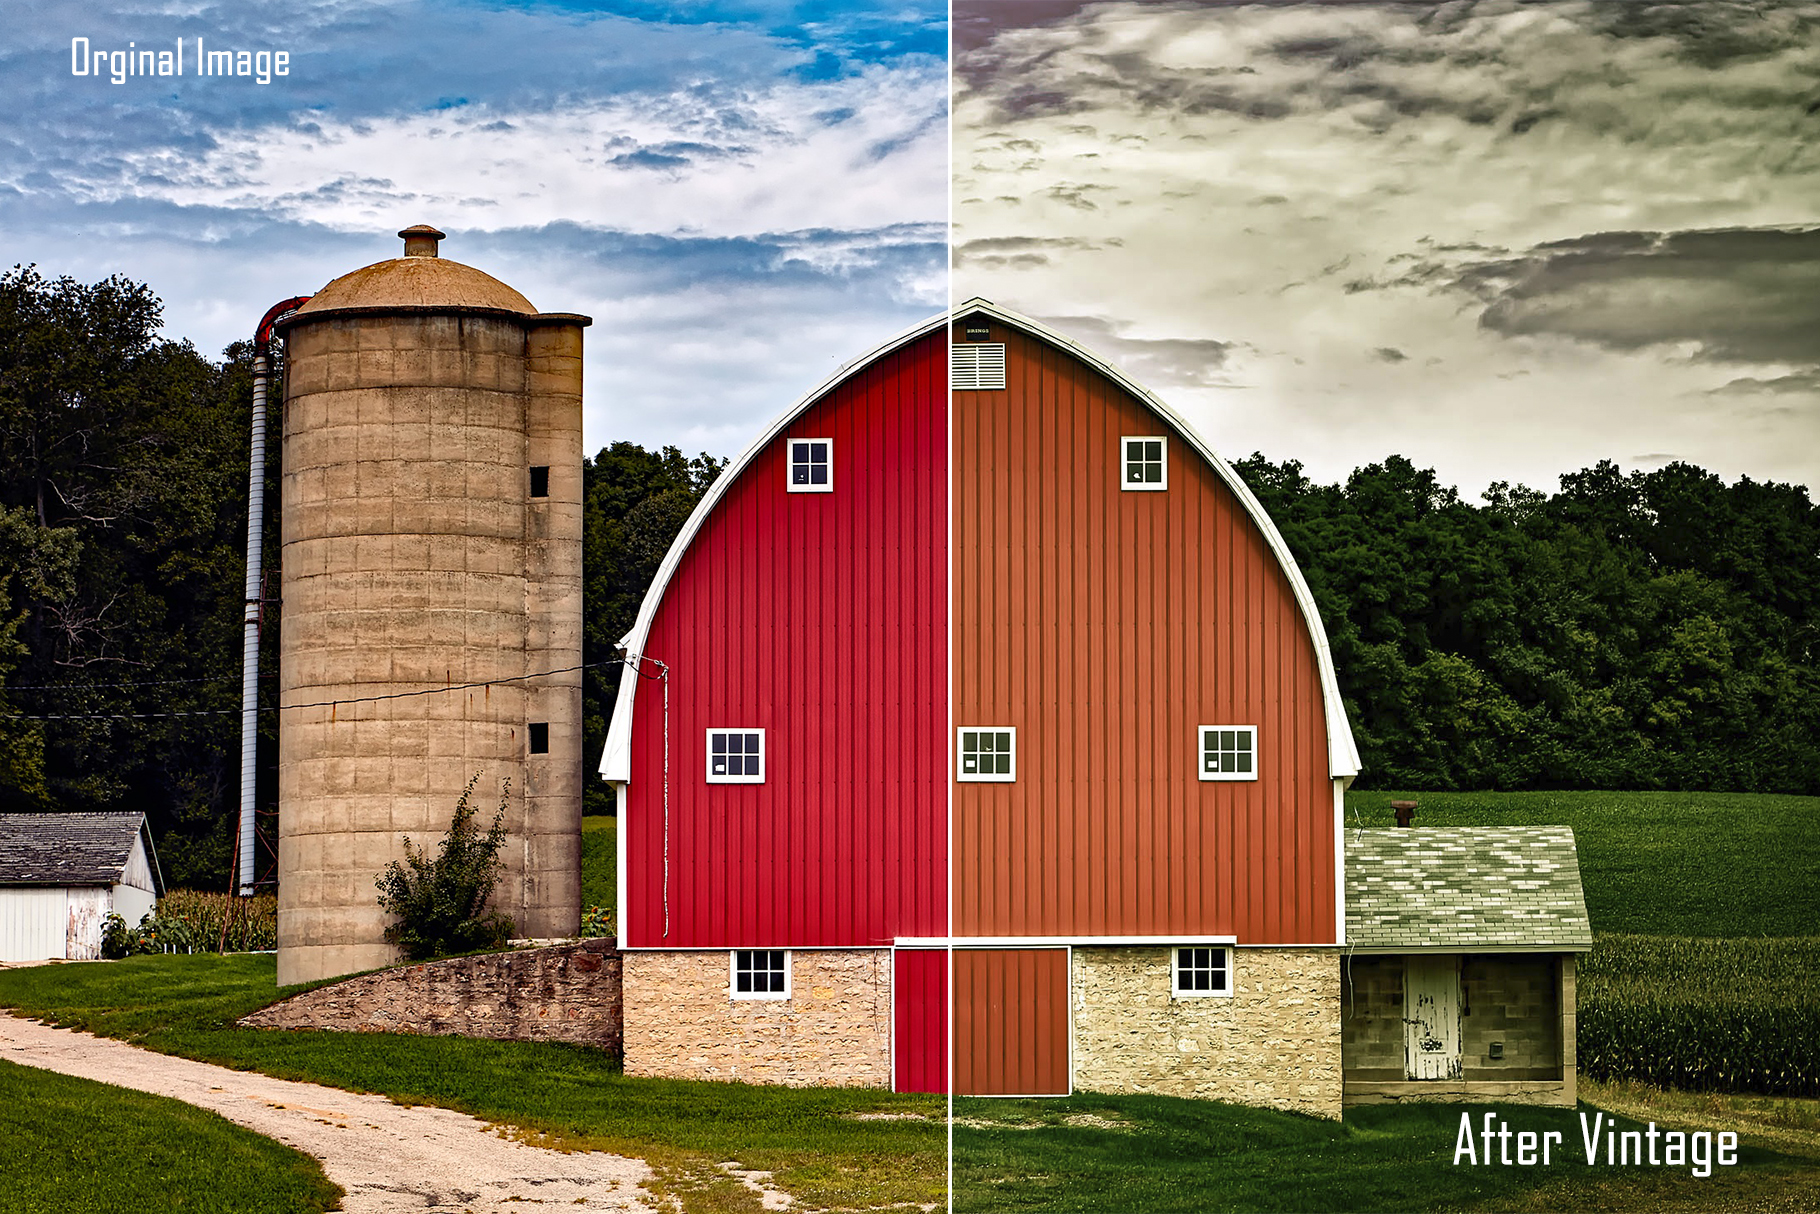 Period of Vintage Lightroom Presets example image 17